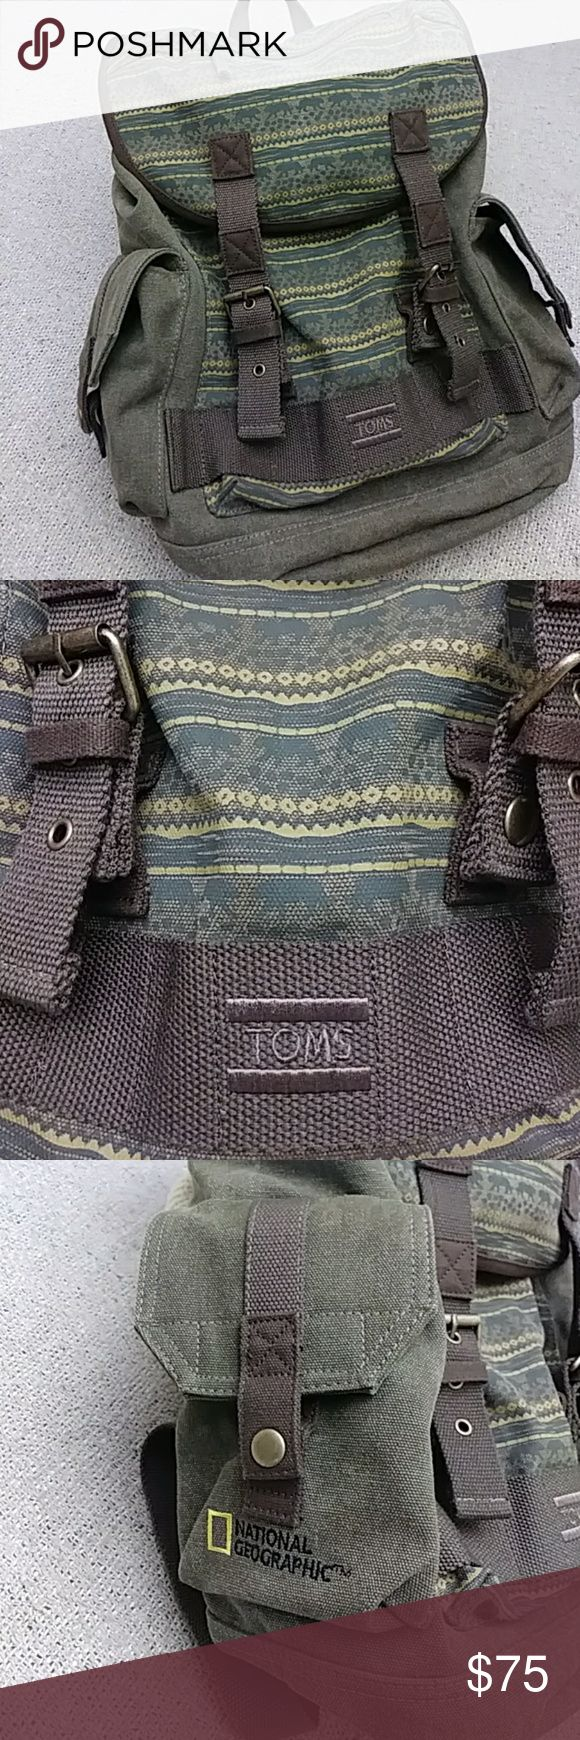 Toms Rare Canvas Safari Backpack Excellent perfect condition Toms very rare canvas safari backpack. National Geographic limited edition with beautiful wild cat images on the inside flap. Toms Bags Backpacks